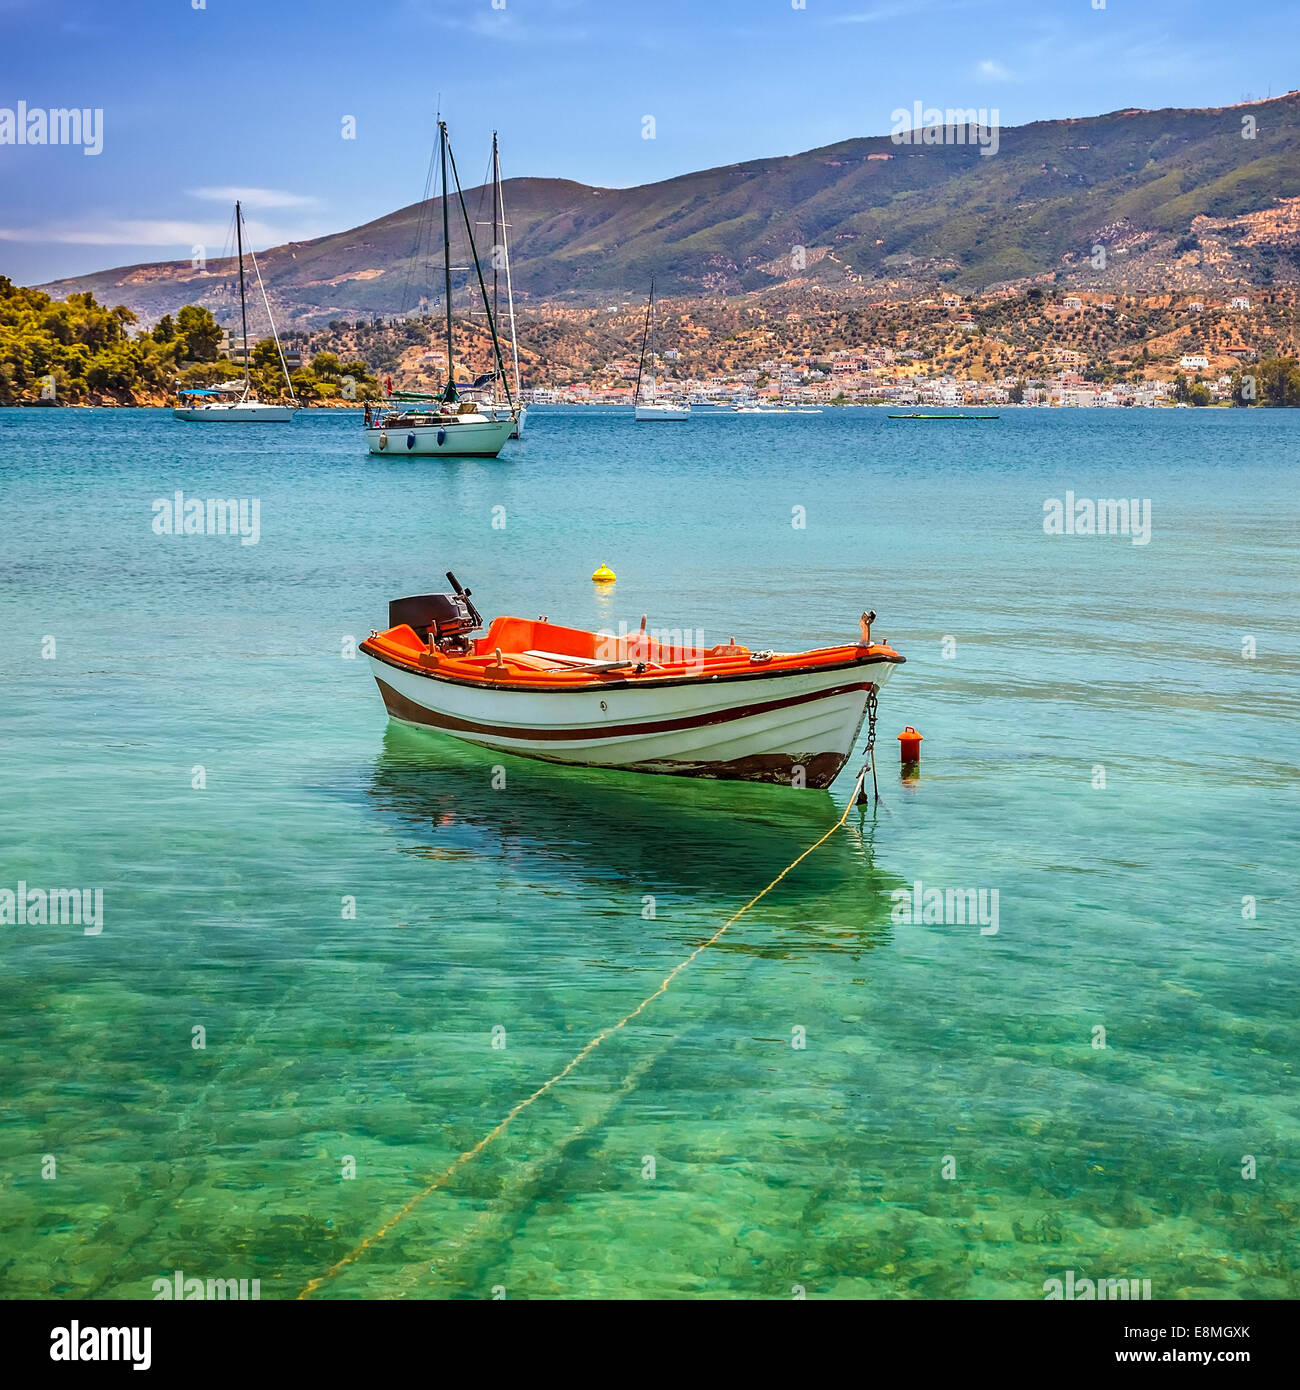 Fishing boat, Greece - Stock Image